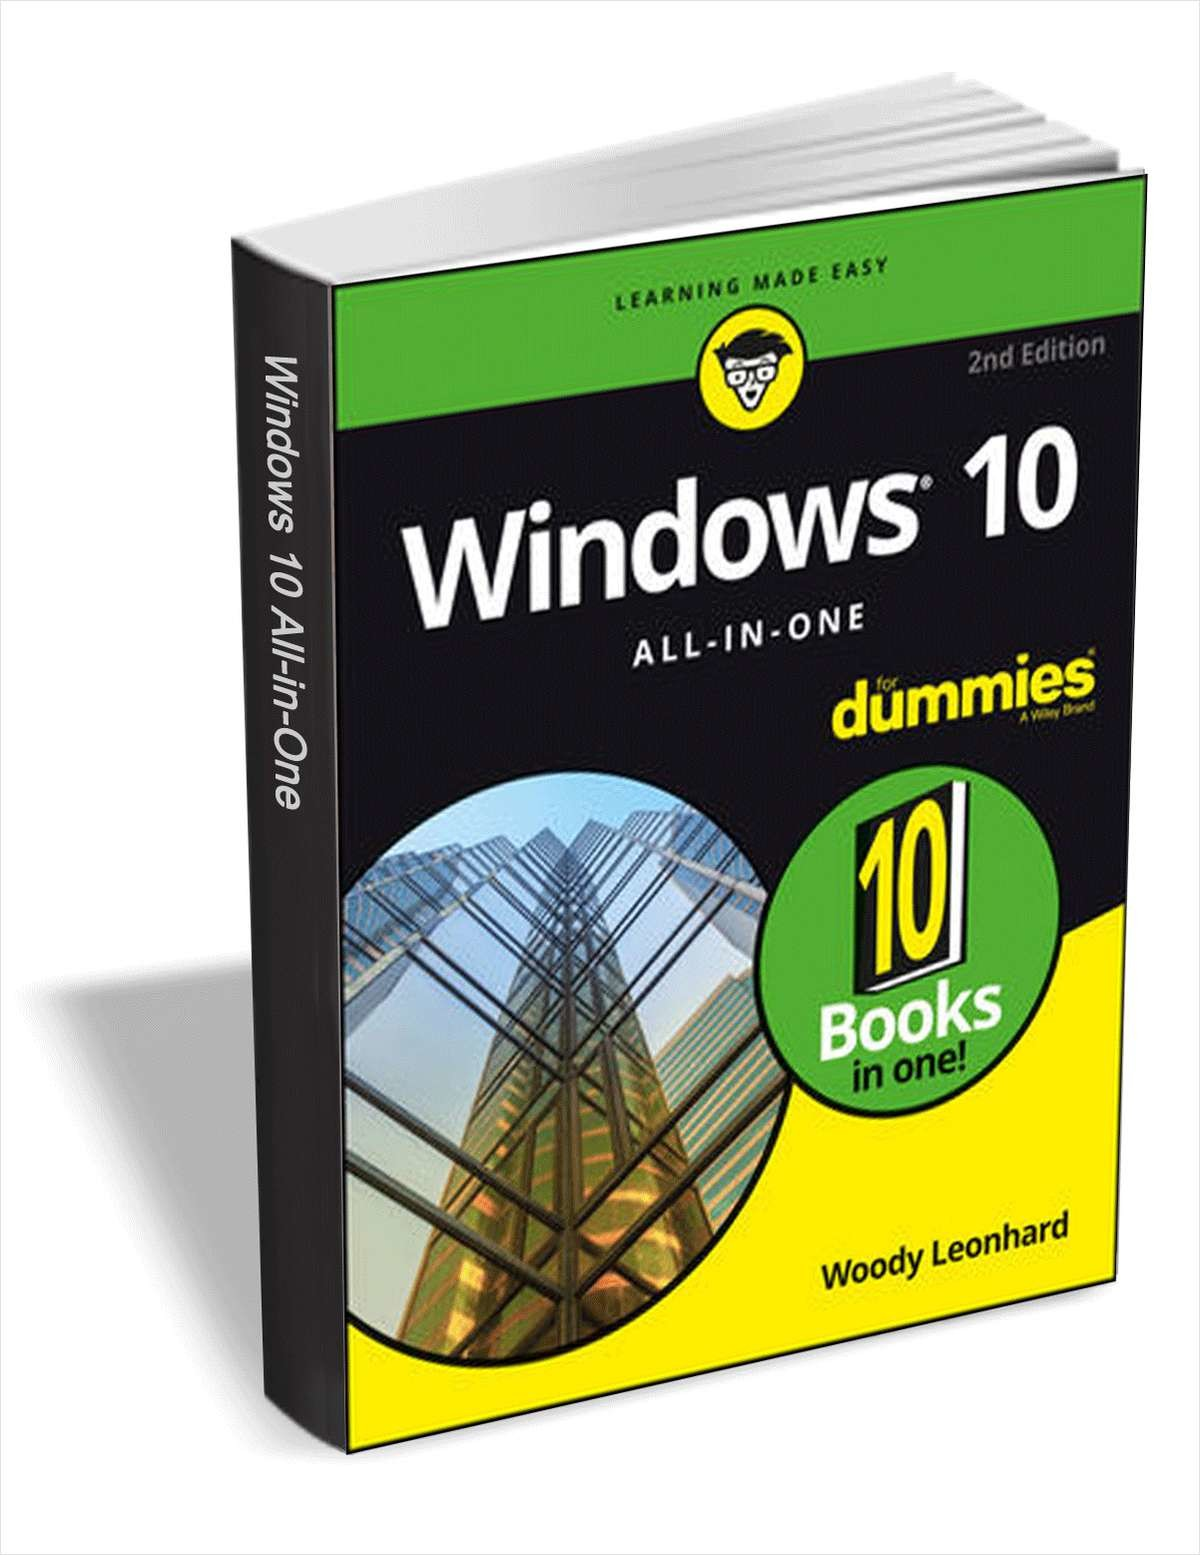 Windows 10 All In One For Dummies Ebook Valued At 19 Free Till